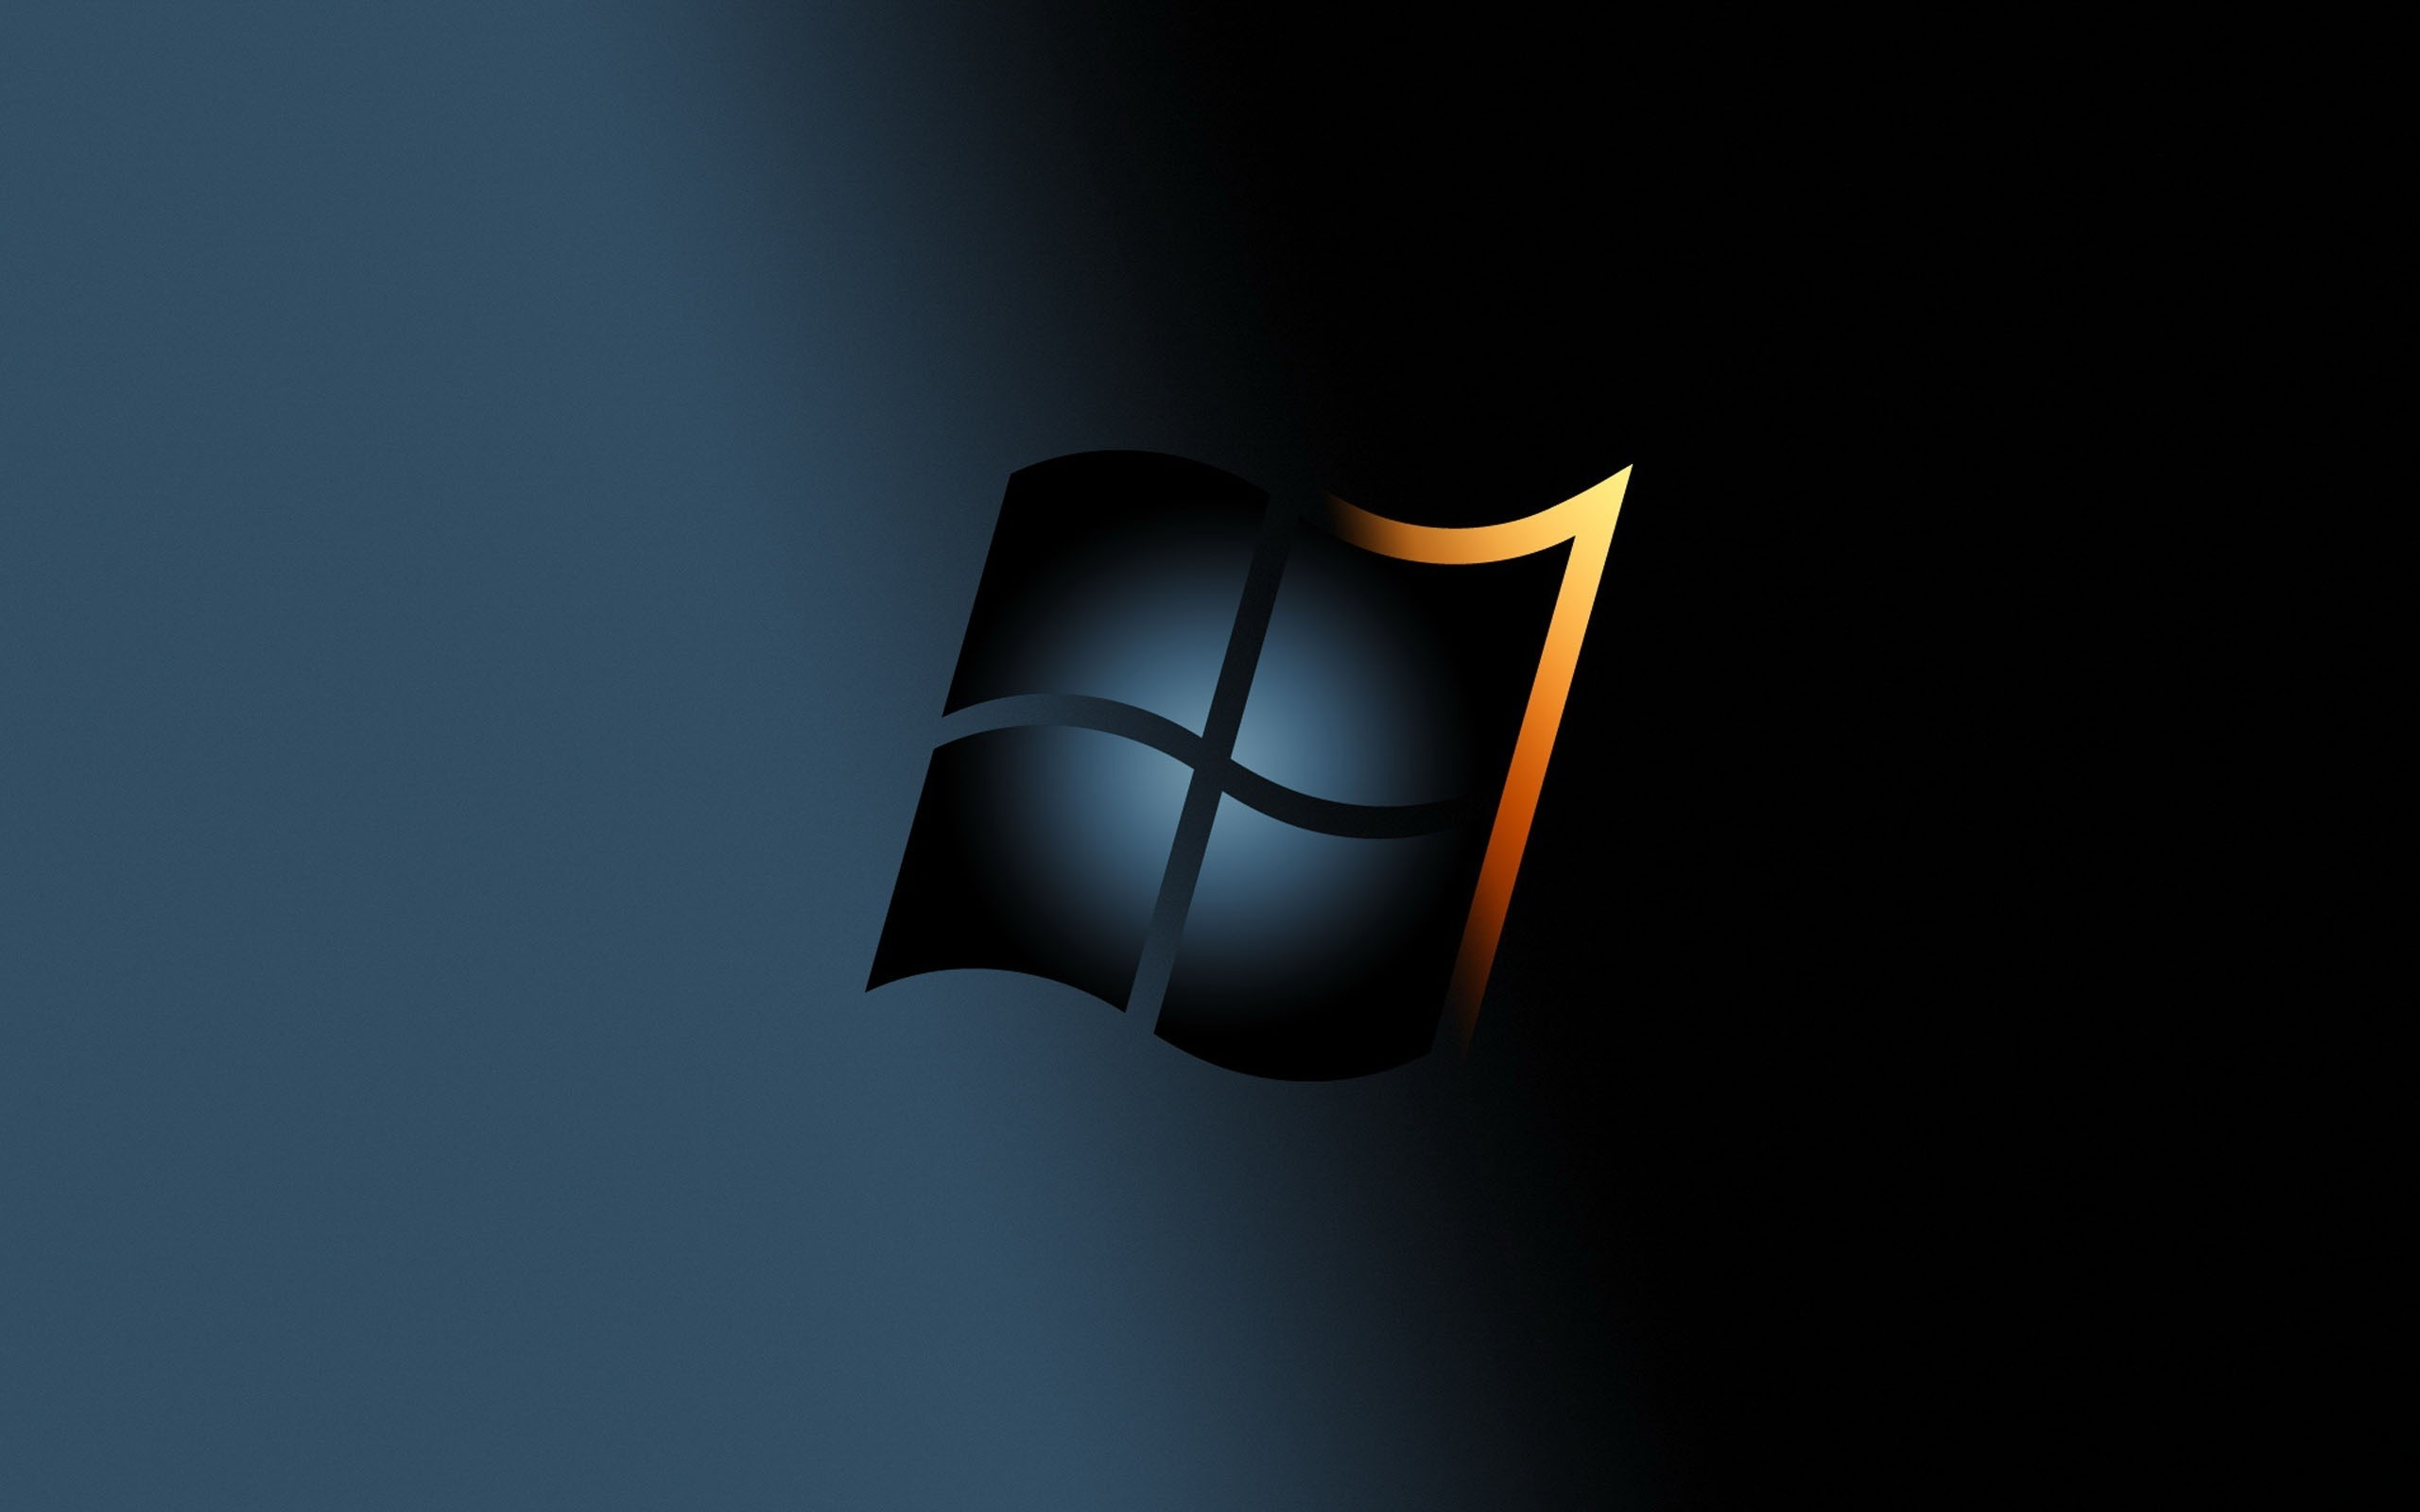 Windows 7 Wallpapers Backgrounds Hd 11